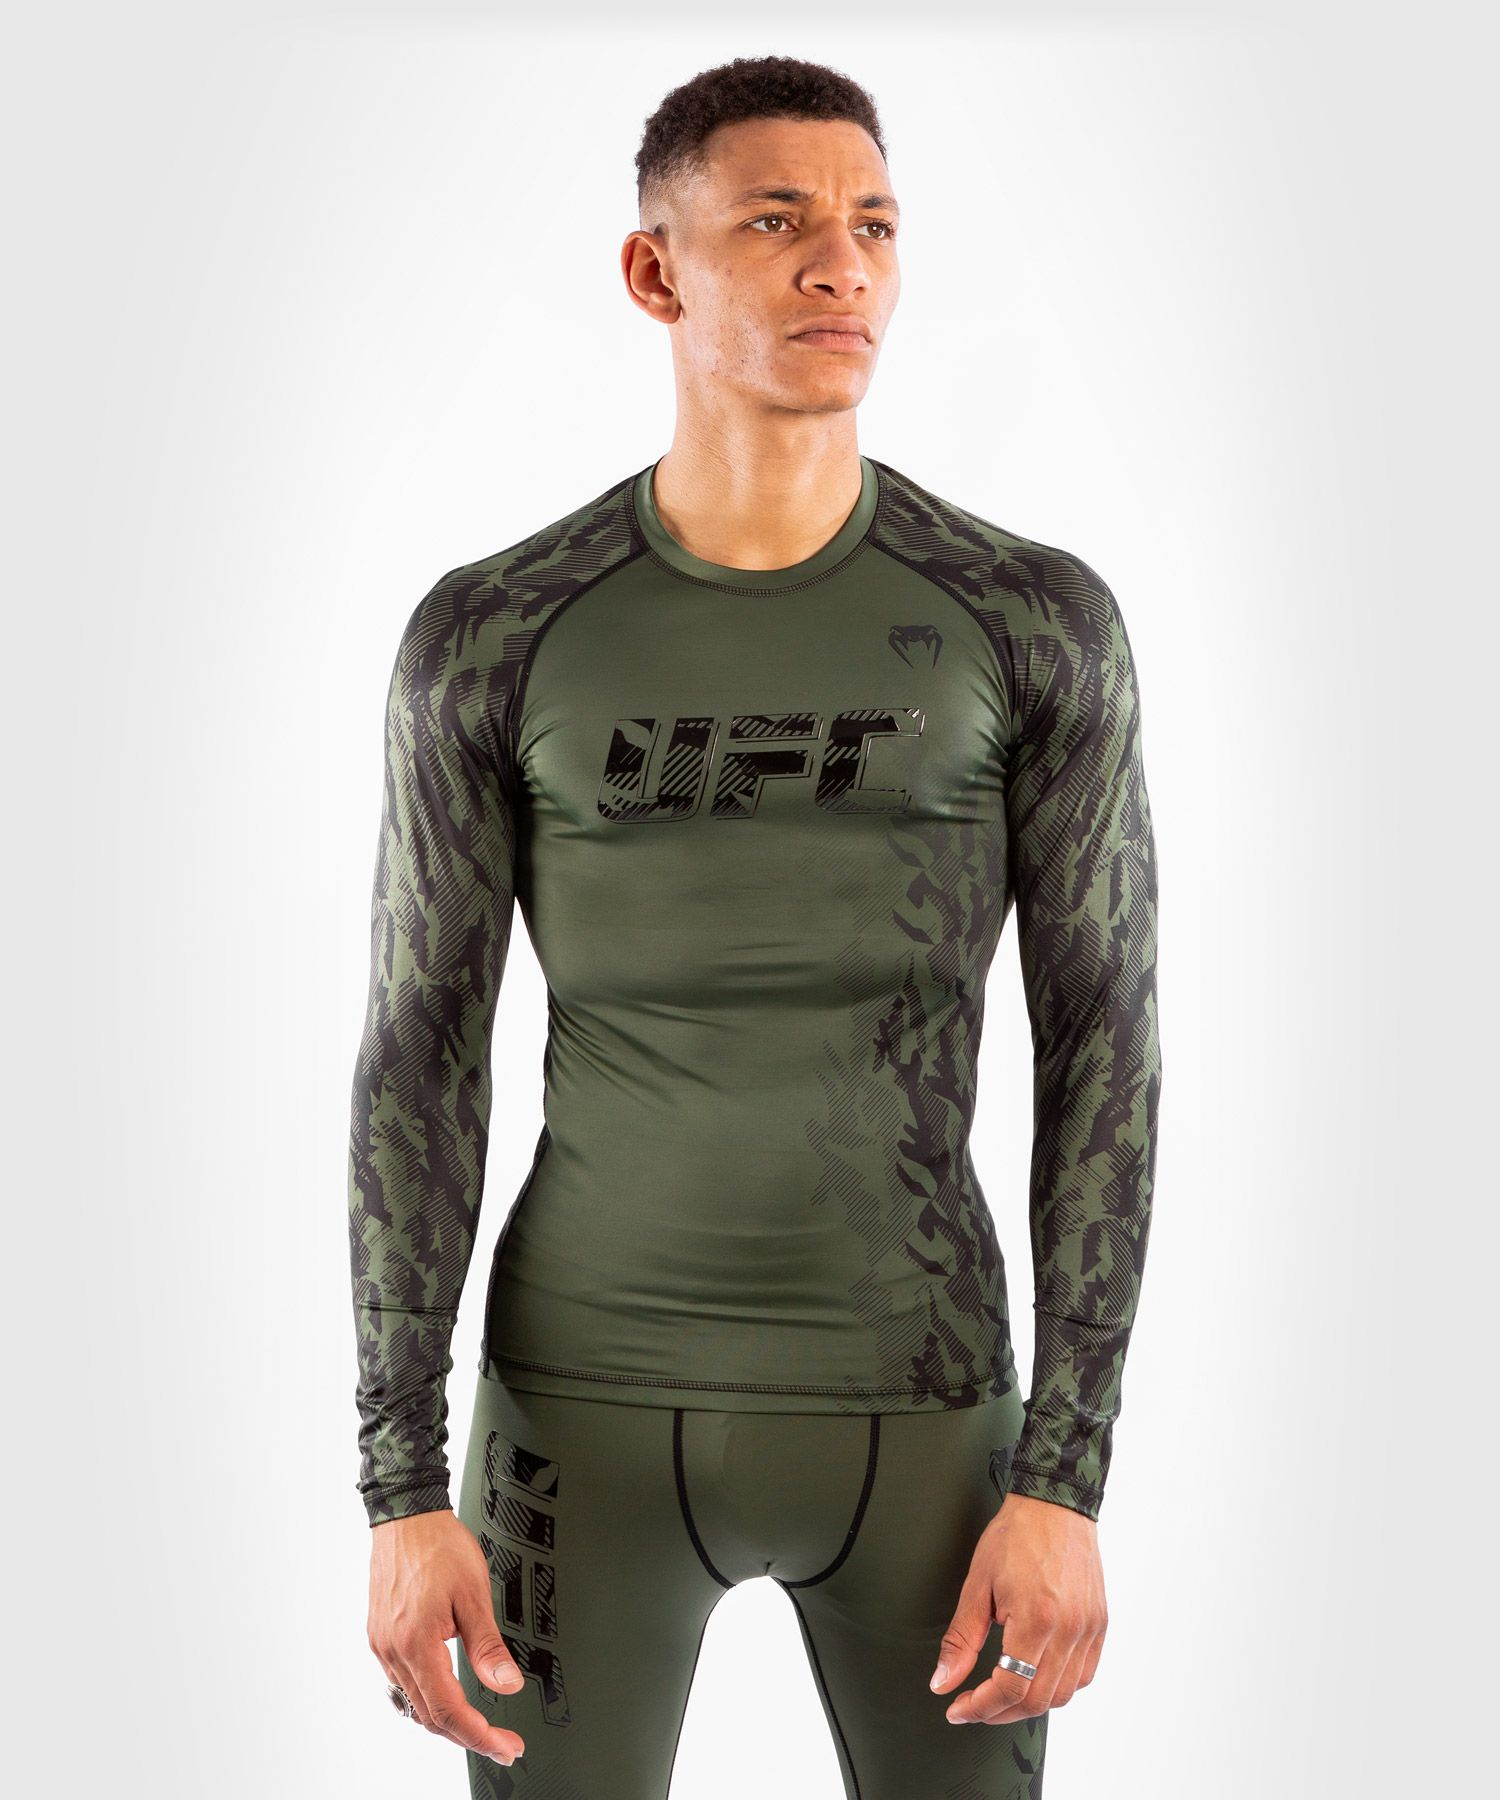 Camiseta De Compresión Manga Larga Para Hombre UFC Venum Authentic Fight Week Performance - Caqui